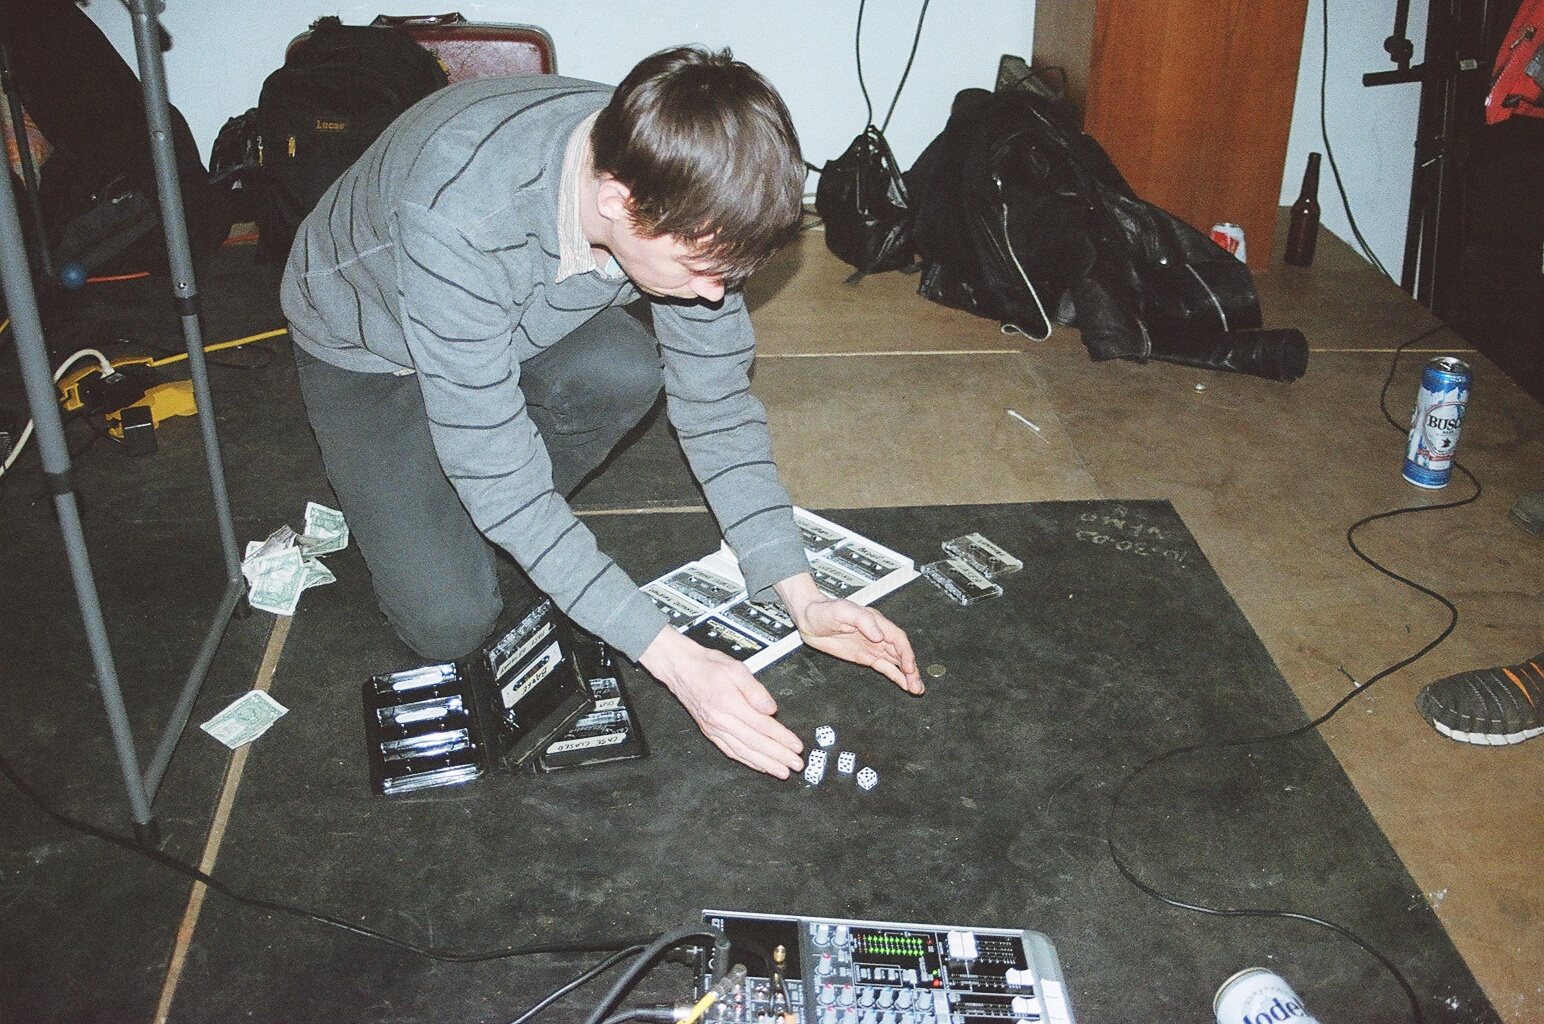 Noah playing dice while also playing a set with Form A Log.